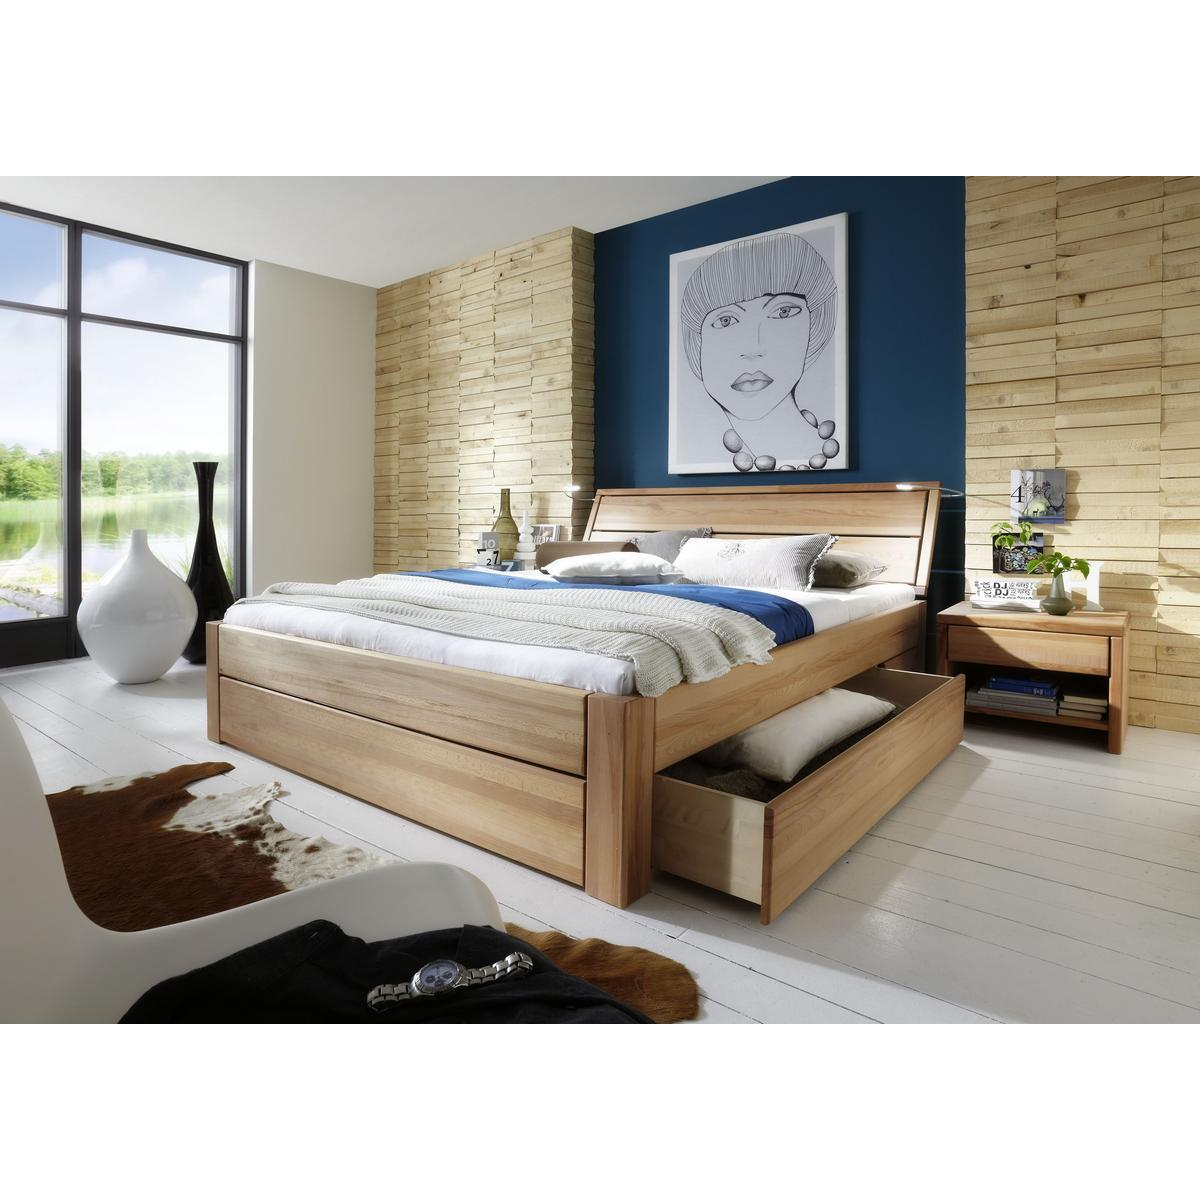 massivholz schubkastenbett 200x200 easy sleep kernbuche. Black Bedroom Furniture Sets. Home Design Ideas